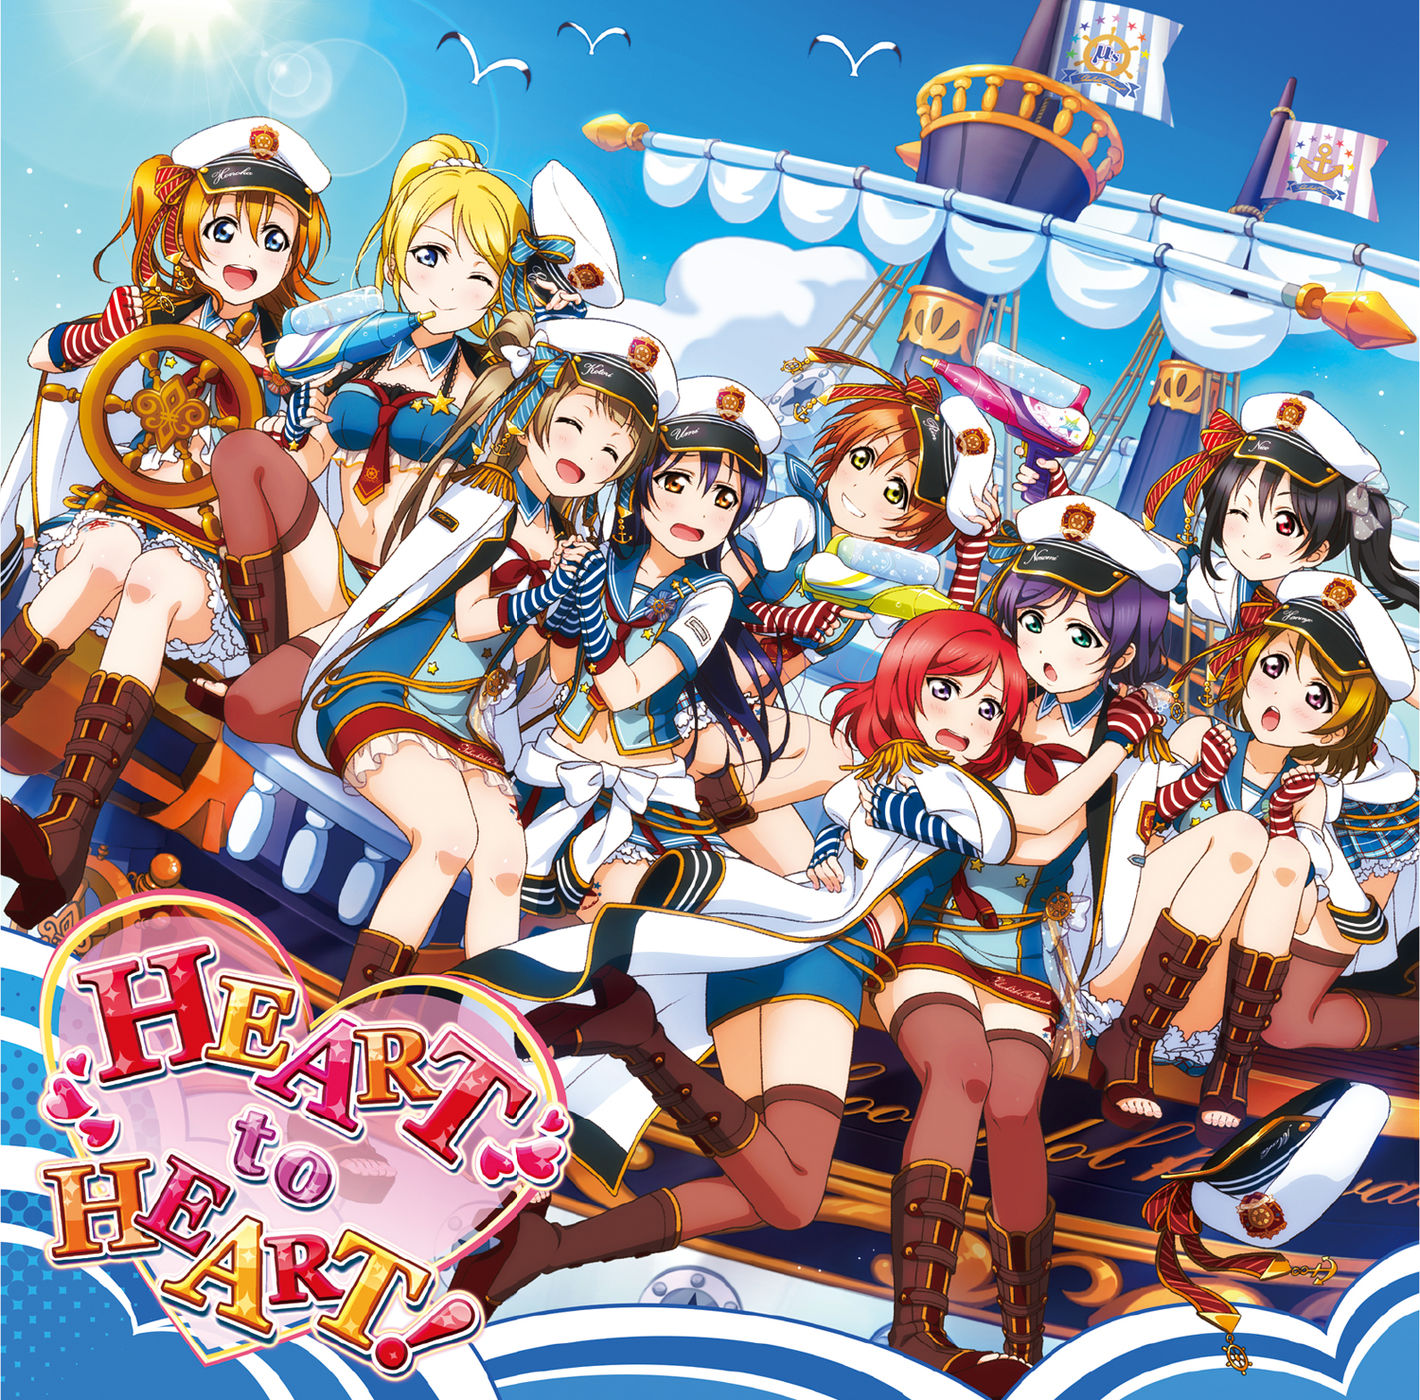 Arashi no Naka no Koi dakara | Love Live! Wiki | FANDOM powered by Wikia